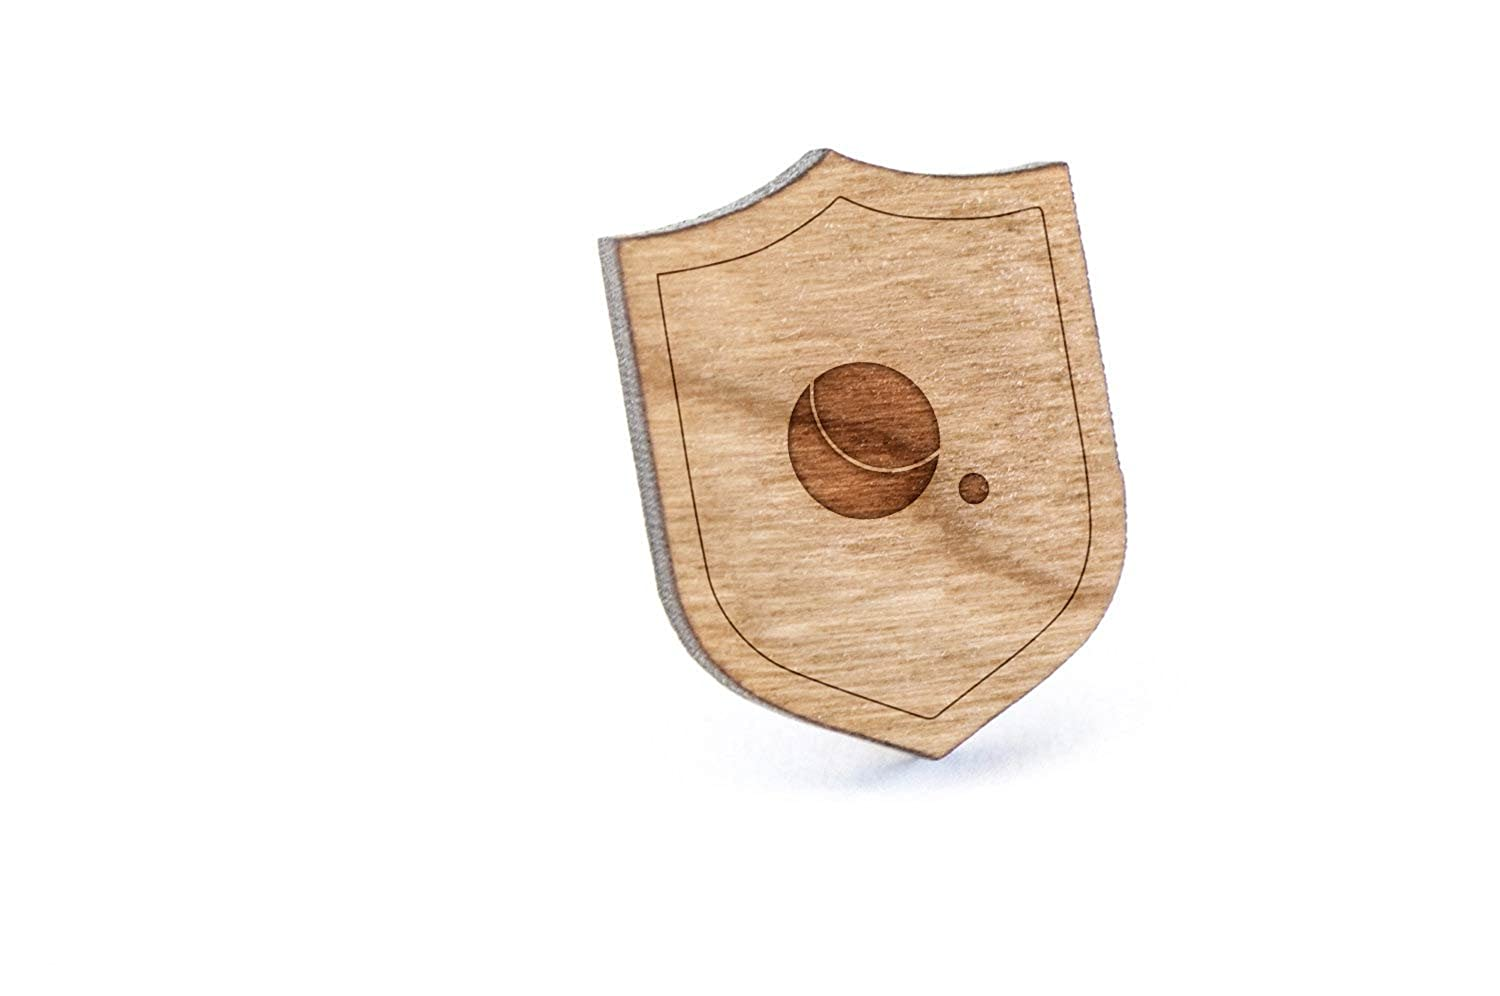 Petanque Lapel Pin, Wooden Pin And Tie Tack   Rustic And Minimalistic Groomsmen Gifts And Wedding Accessories